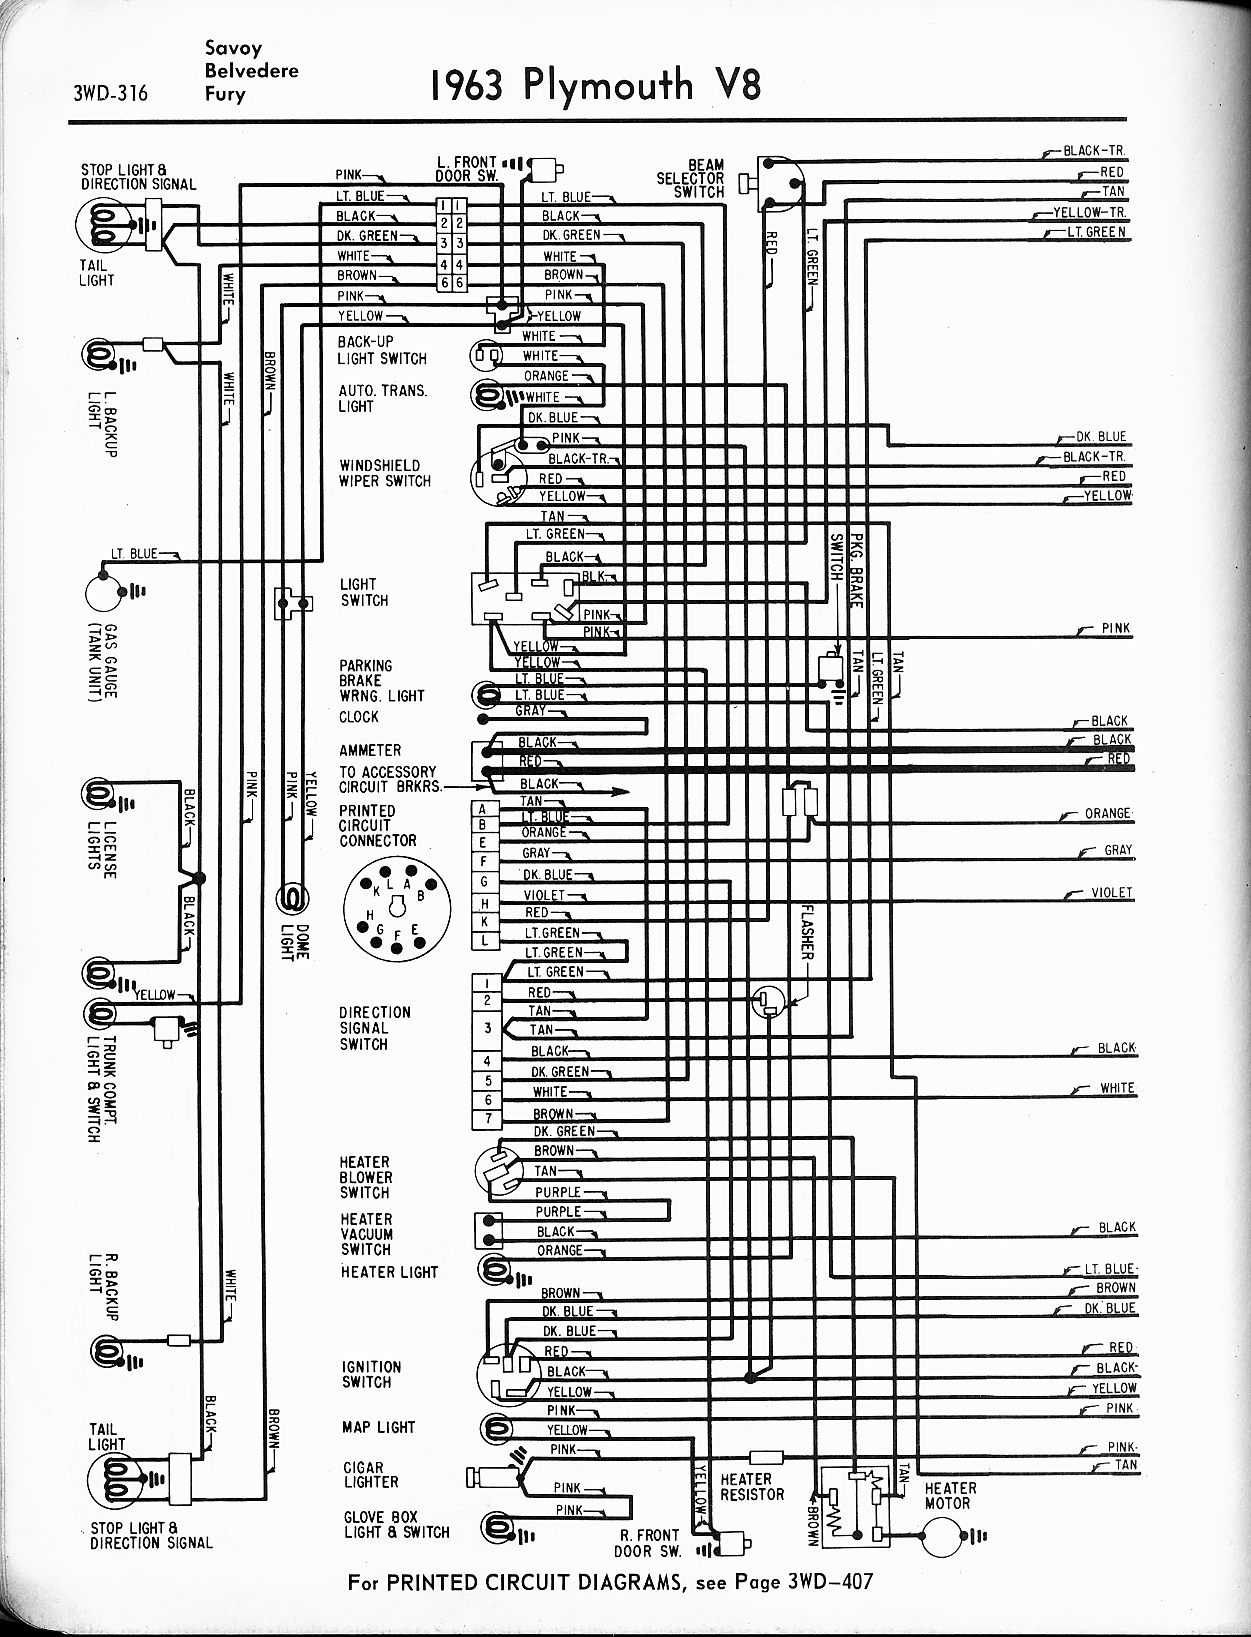 wiring diagram for 2002 pontiac bonneville wiring library pontiac bonneville schematics house wiring diagram symbols u2022 1997 pontiac grand am wiring diagram 2000